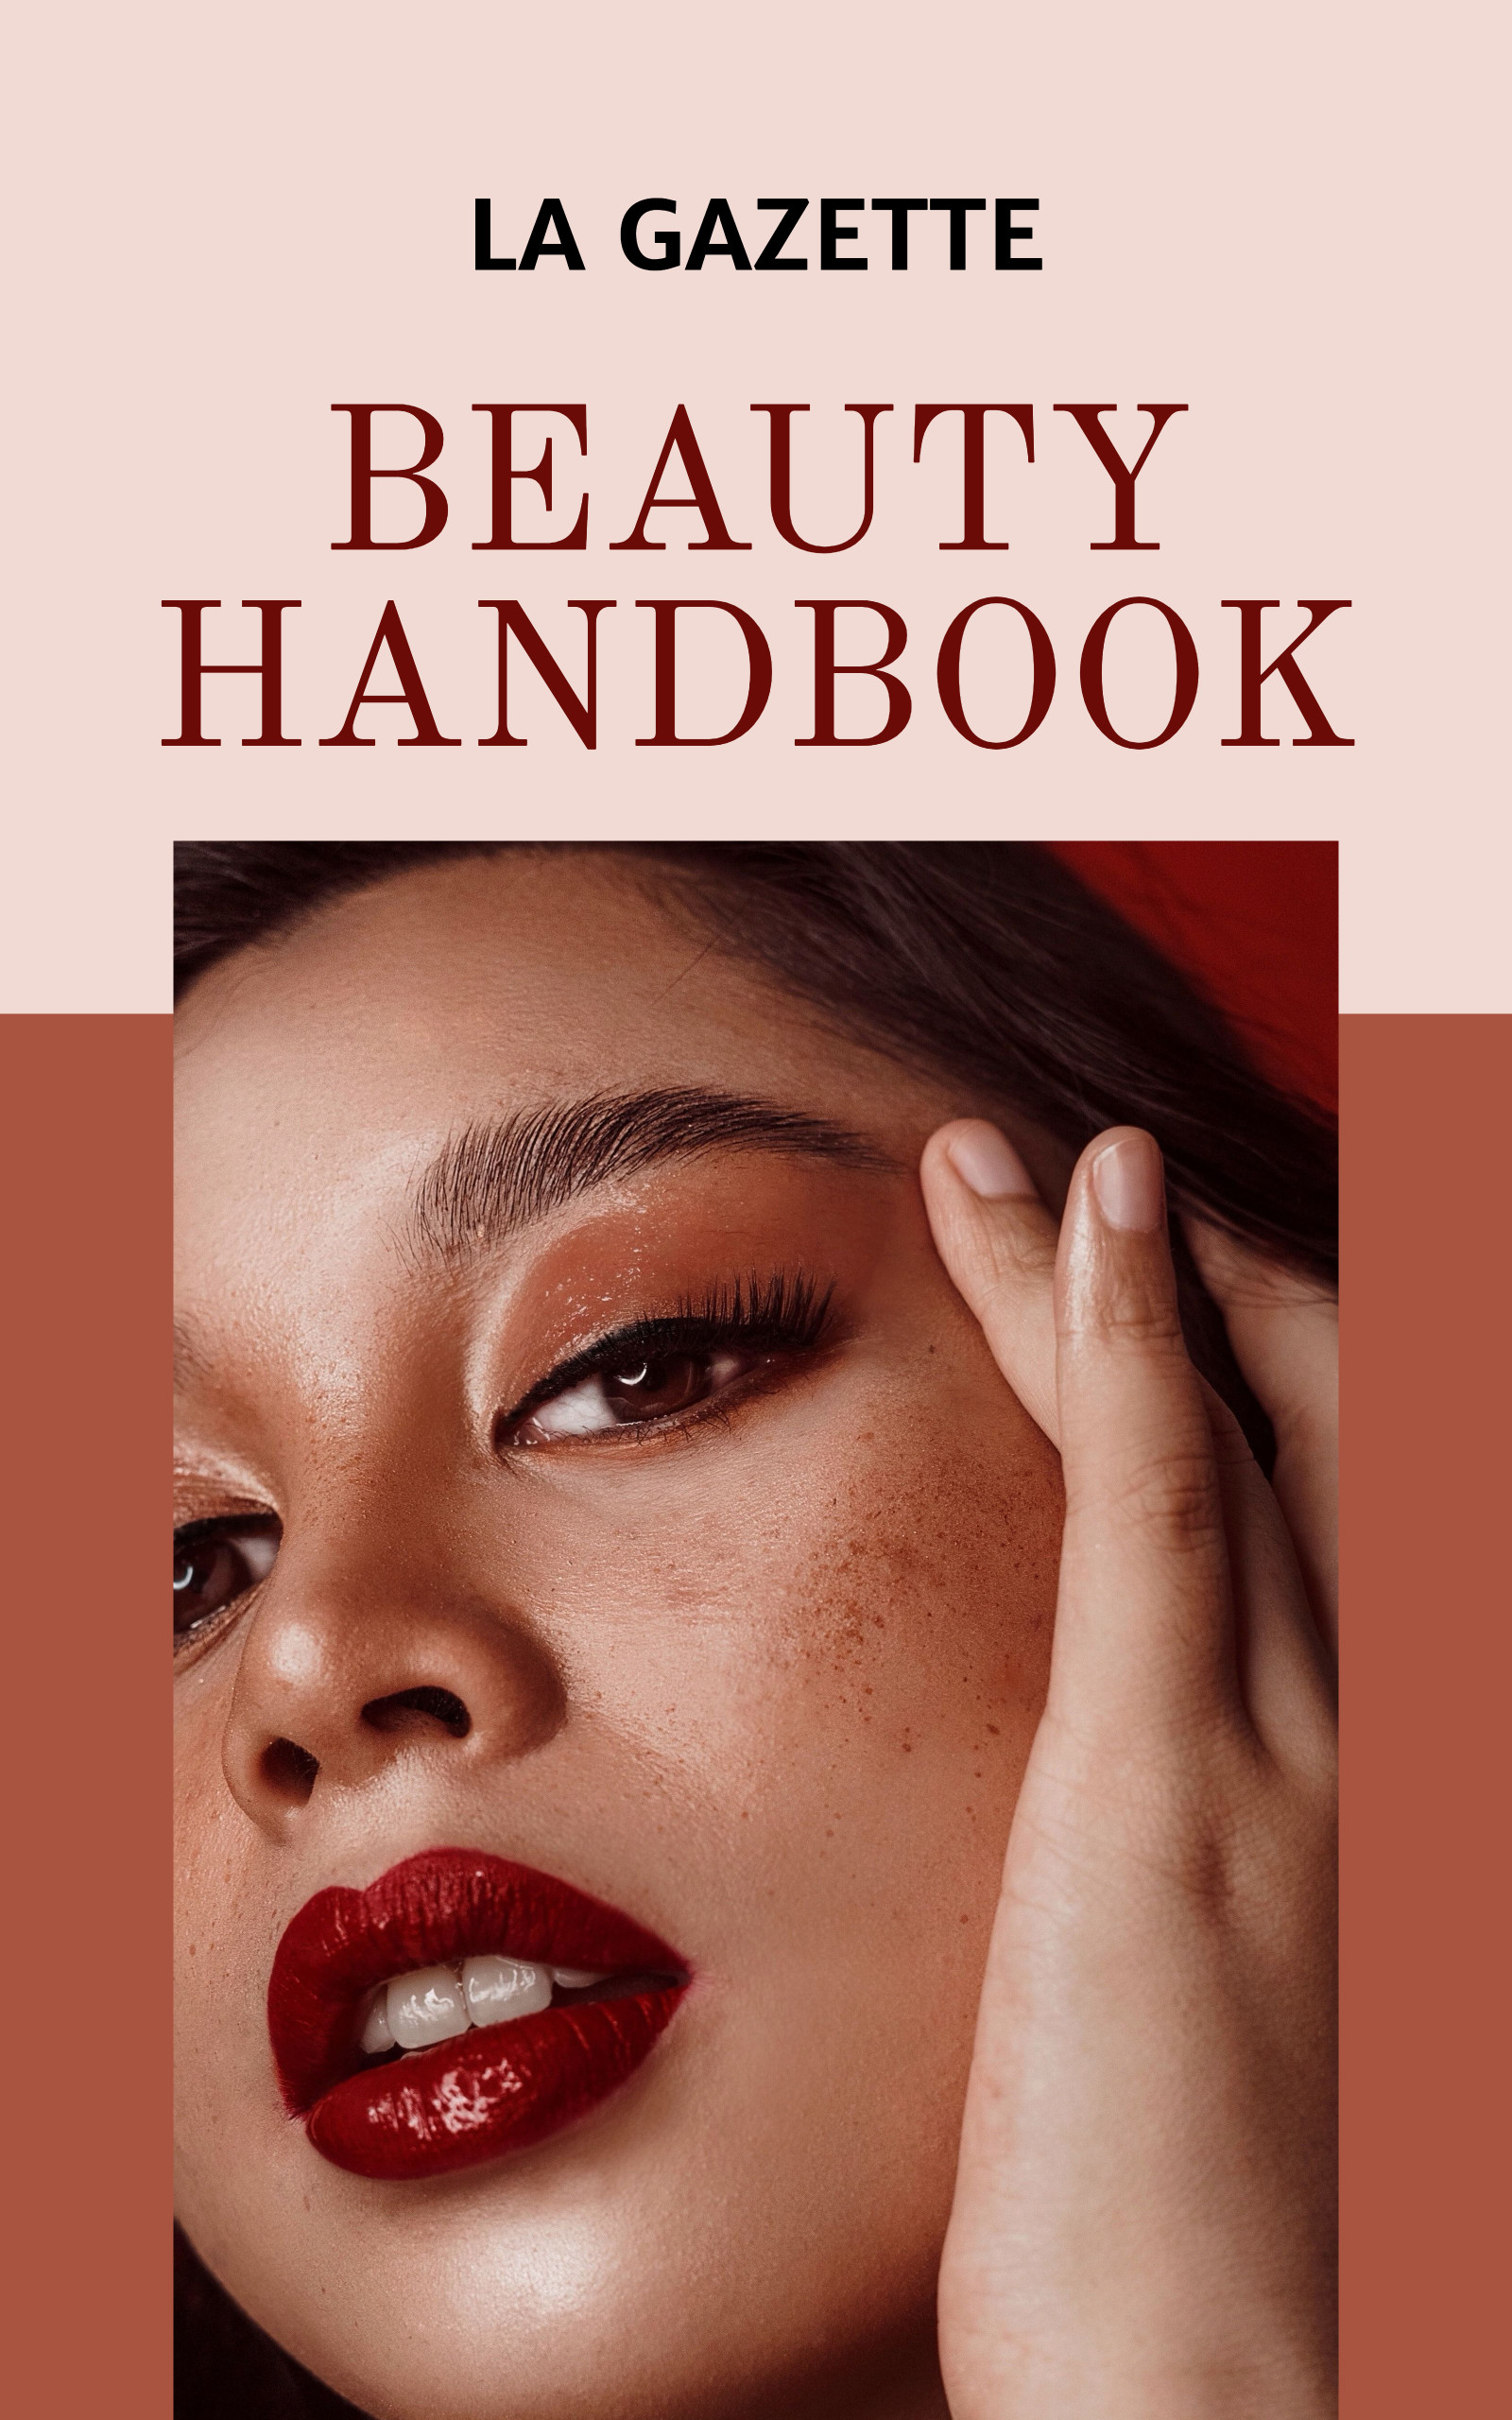 La Gazette - Beauty Handbook